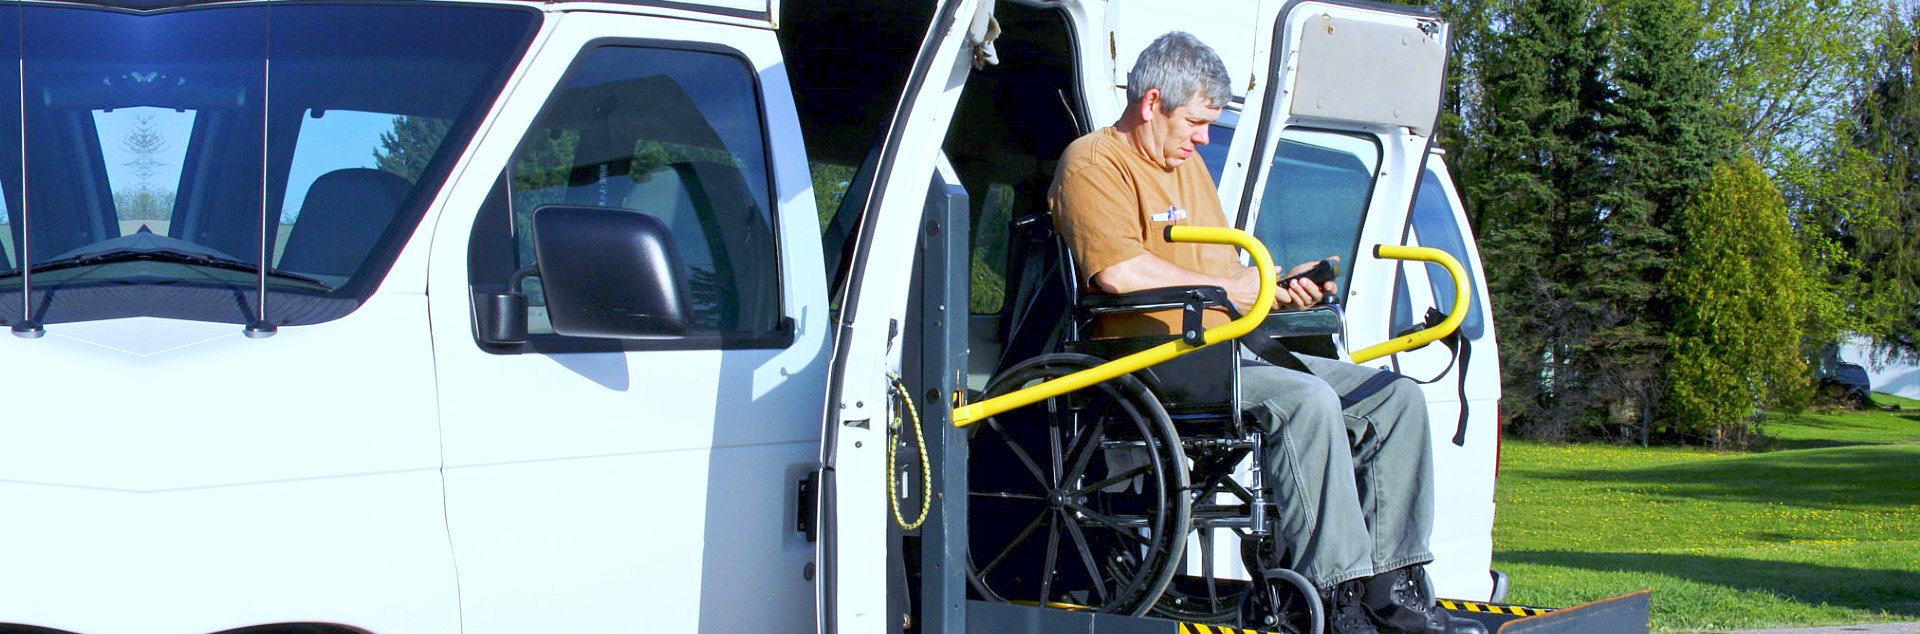 old man in a wheelchair using a wheelchair lift